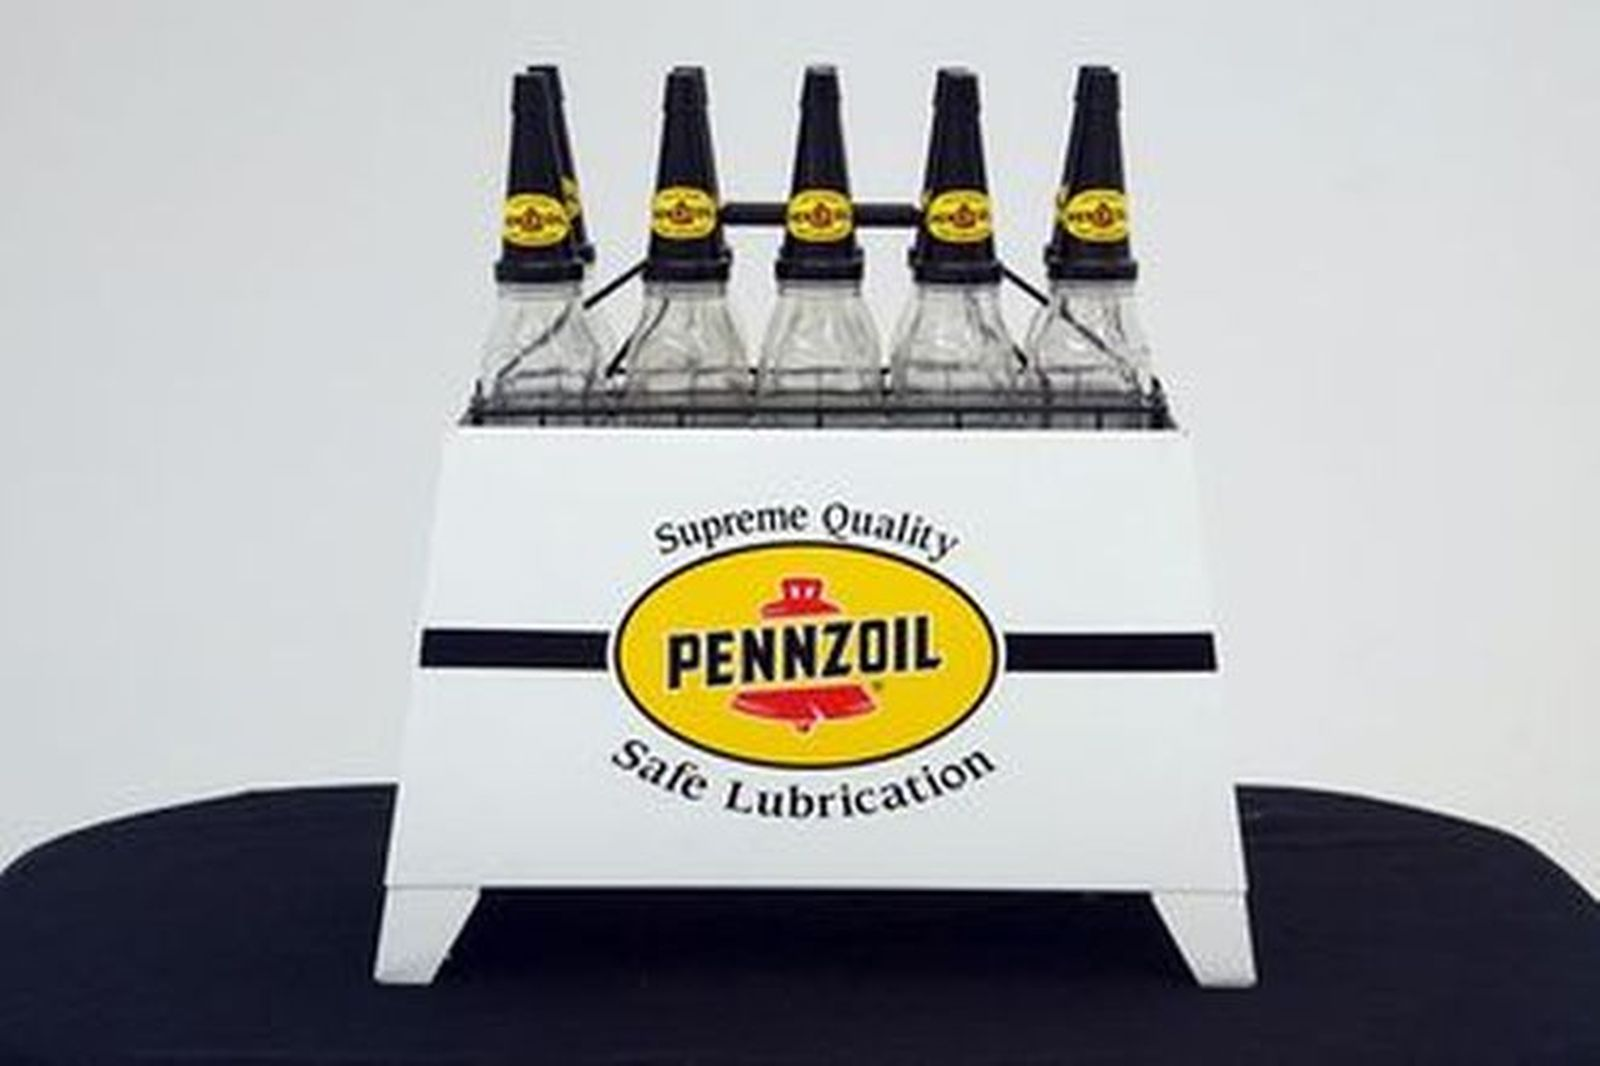 Oil Rack & Bottles - 10 x Bottles with tops in Pennzoil Livery